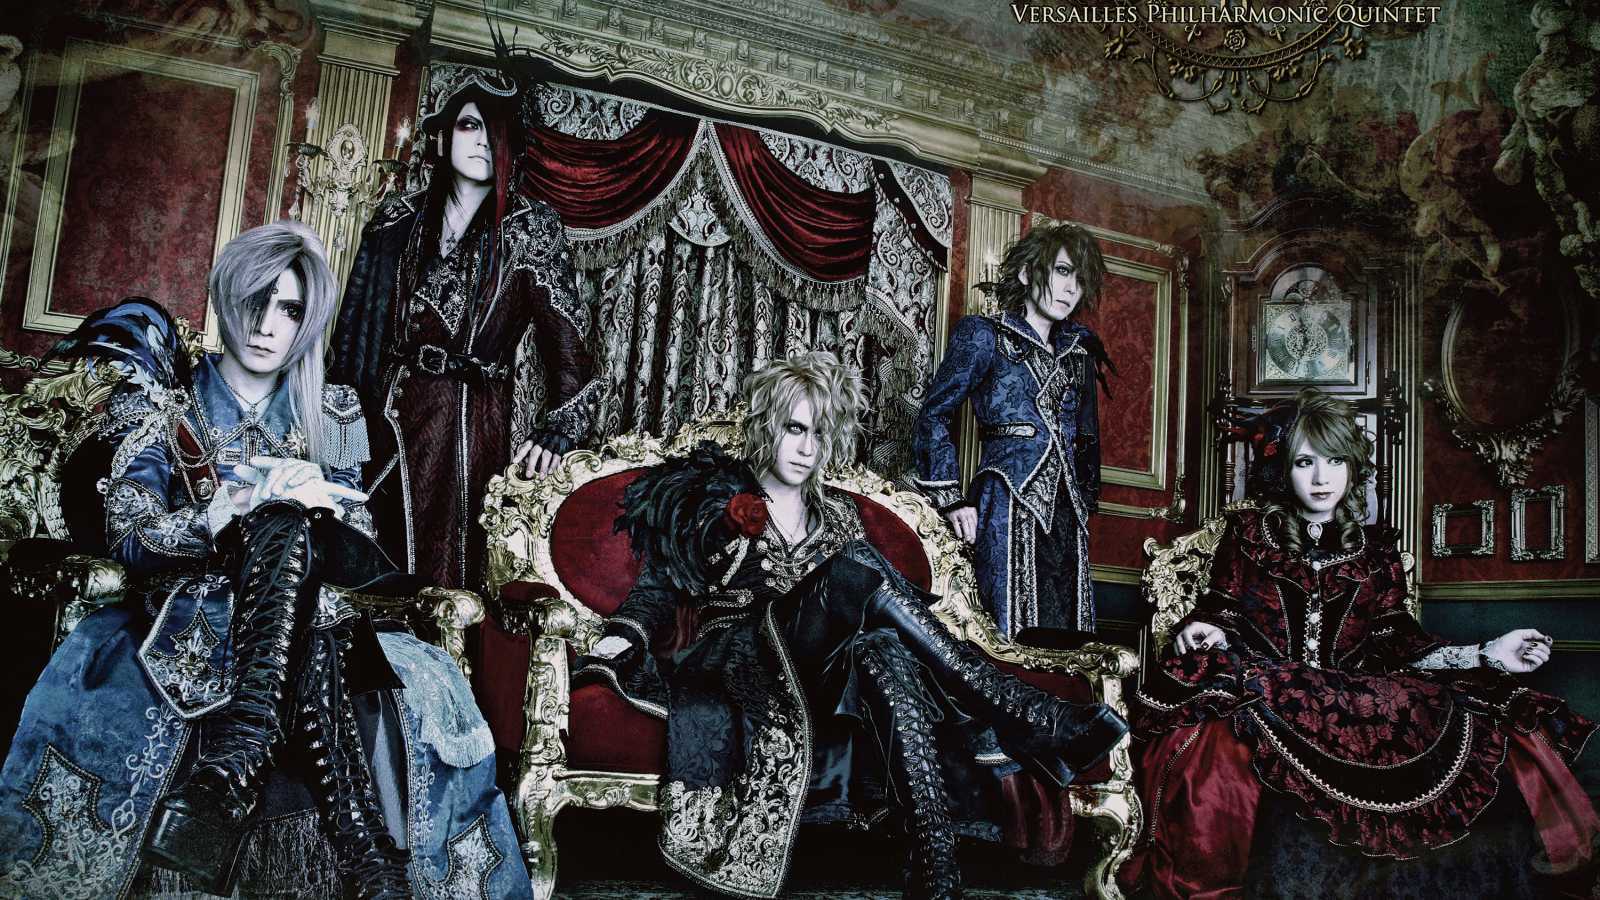 Nuevo lanzamiento digital de Versailles © Versailles -Philharmonic Quintet-. All rights reserved.